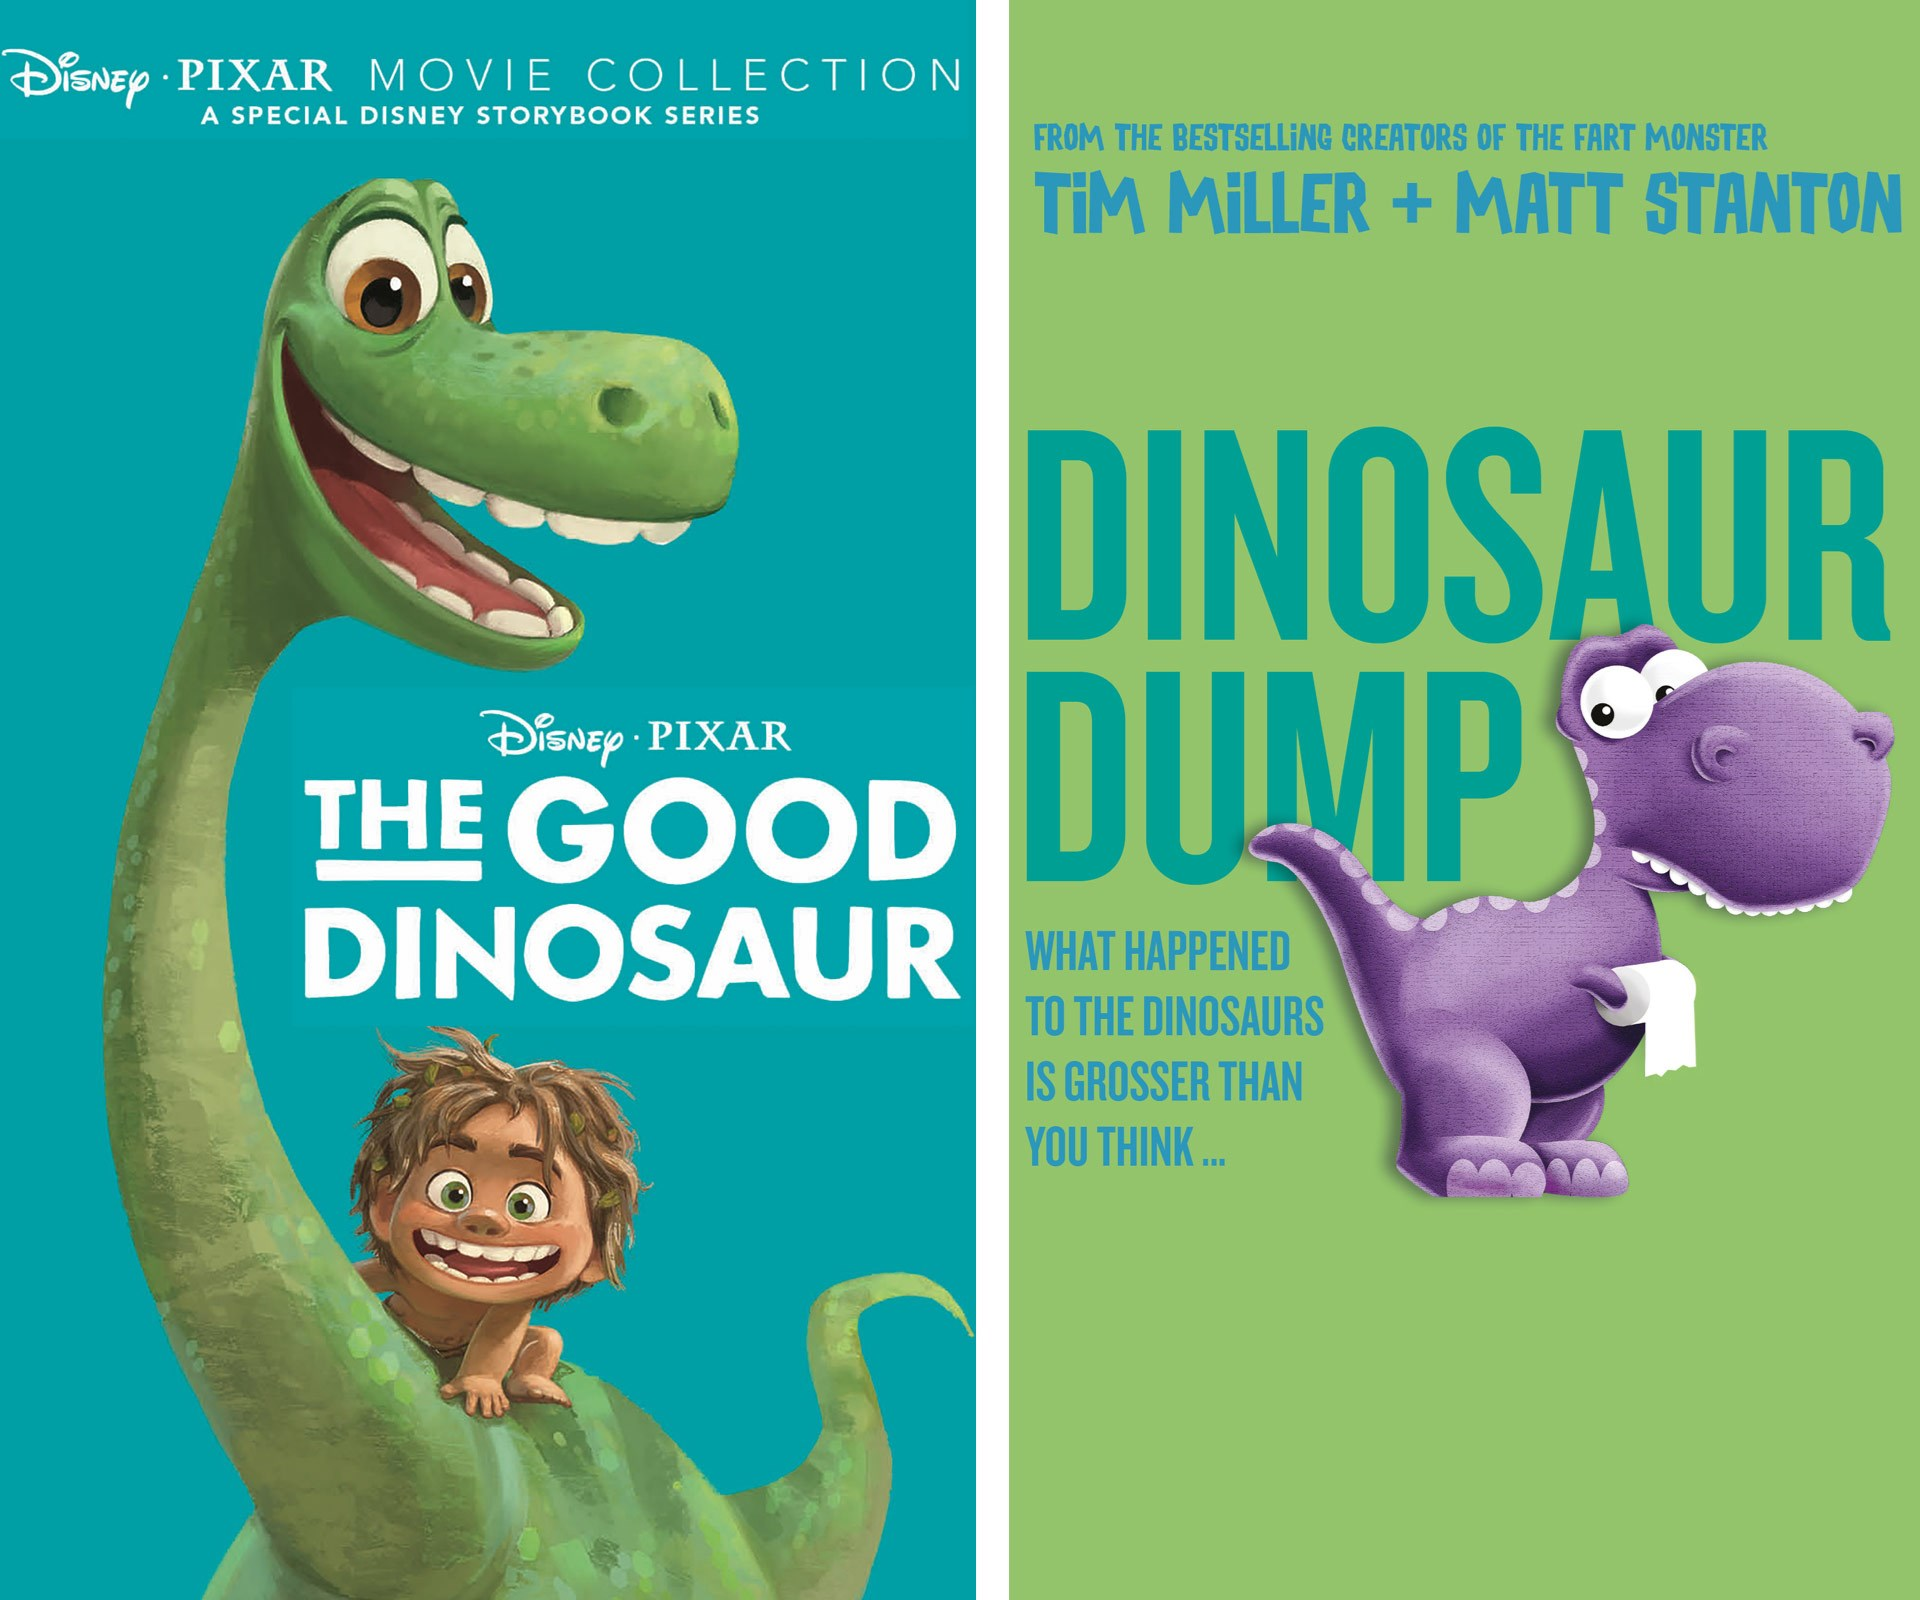 Take a step back in time with your little ones this Christmas and grab them a copy of Disney's *The Good Dinosaur* or the adorable *Dinosaur Dump*. Both are the perfect stocking fillers for all the youngsters.